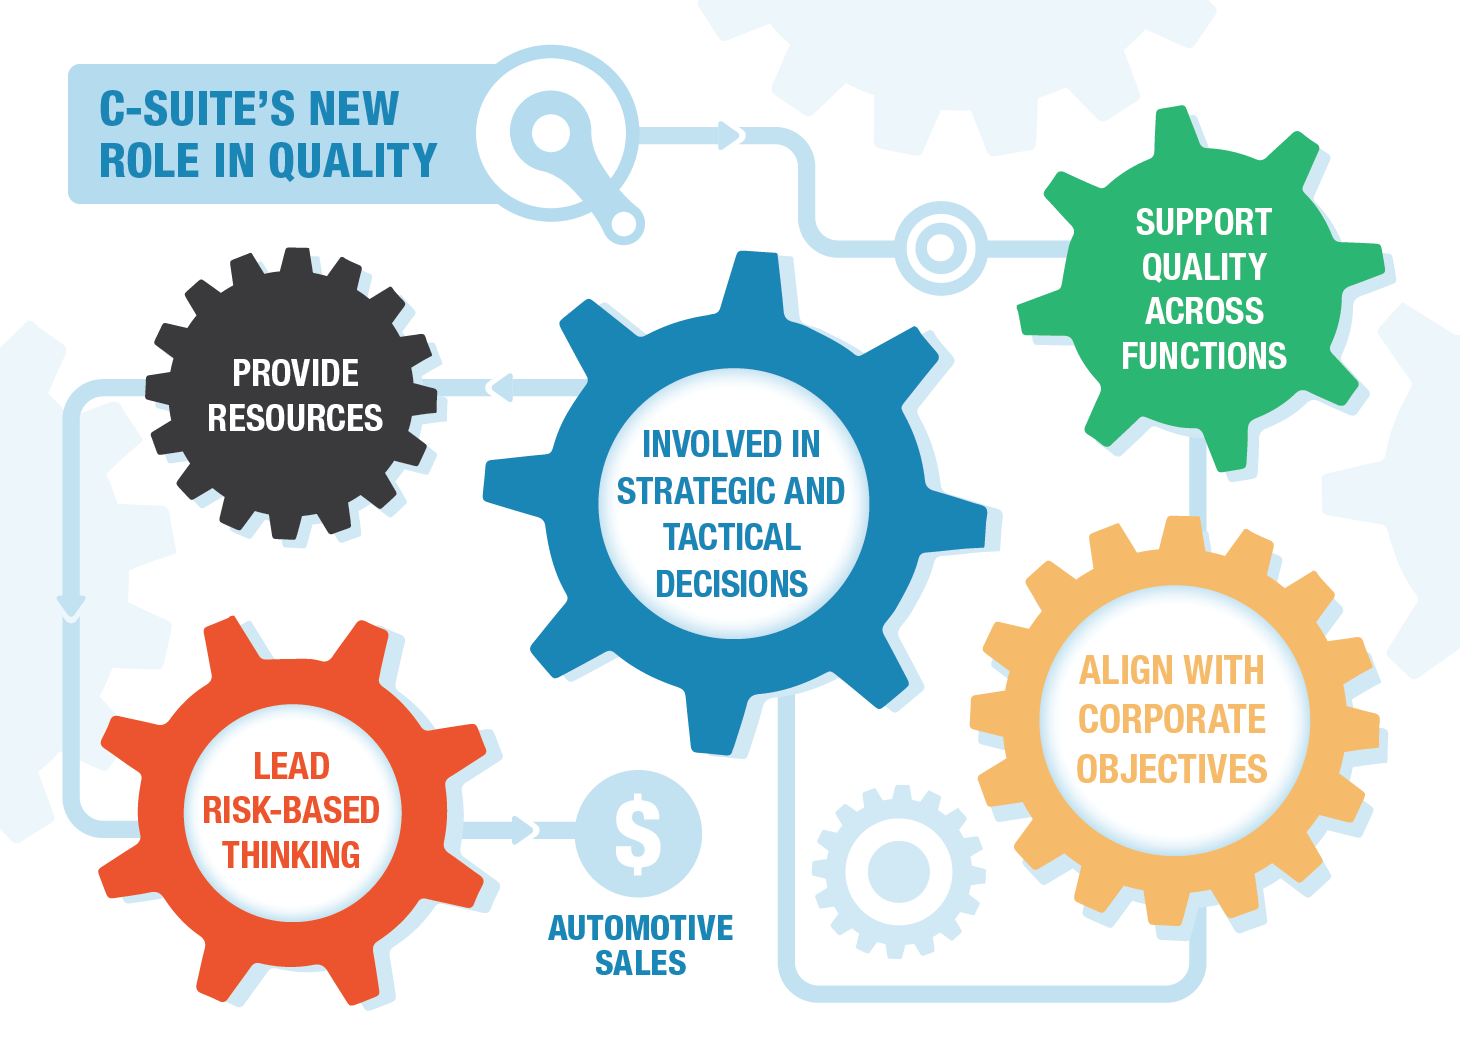 C-Suite's New Role in Quality